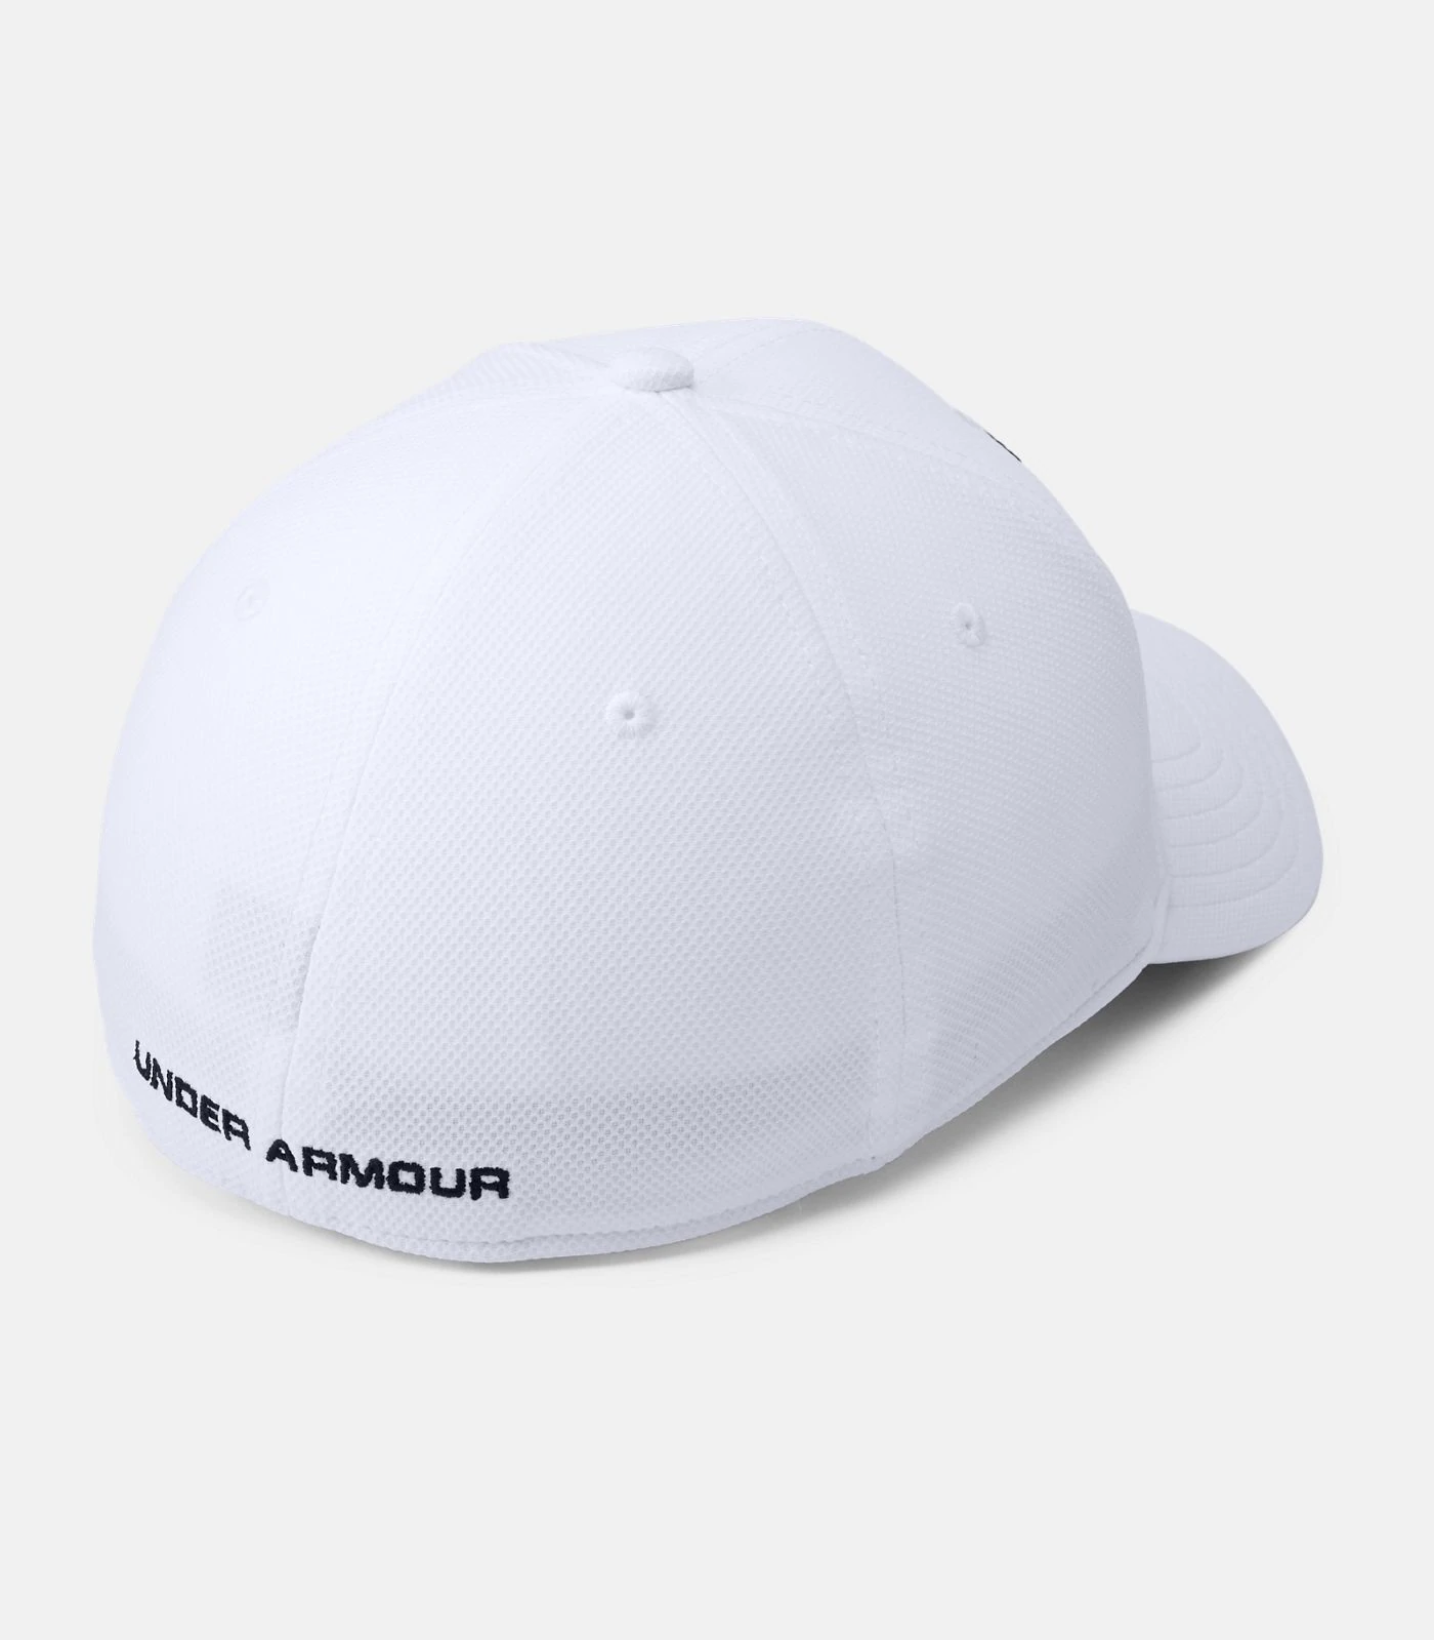 Under Armour Under Armour Blitzing 3.0 Cap Black on White